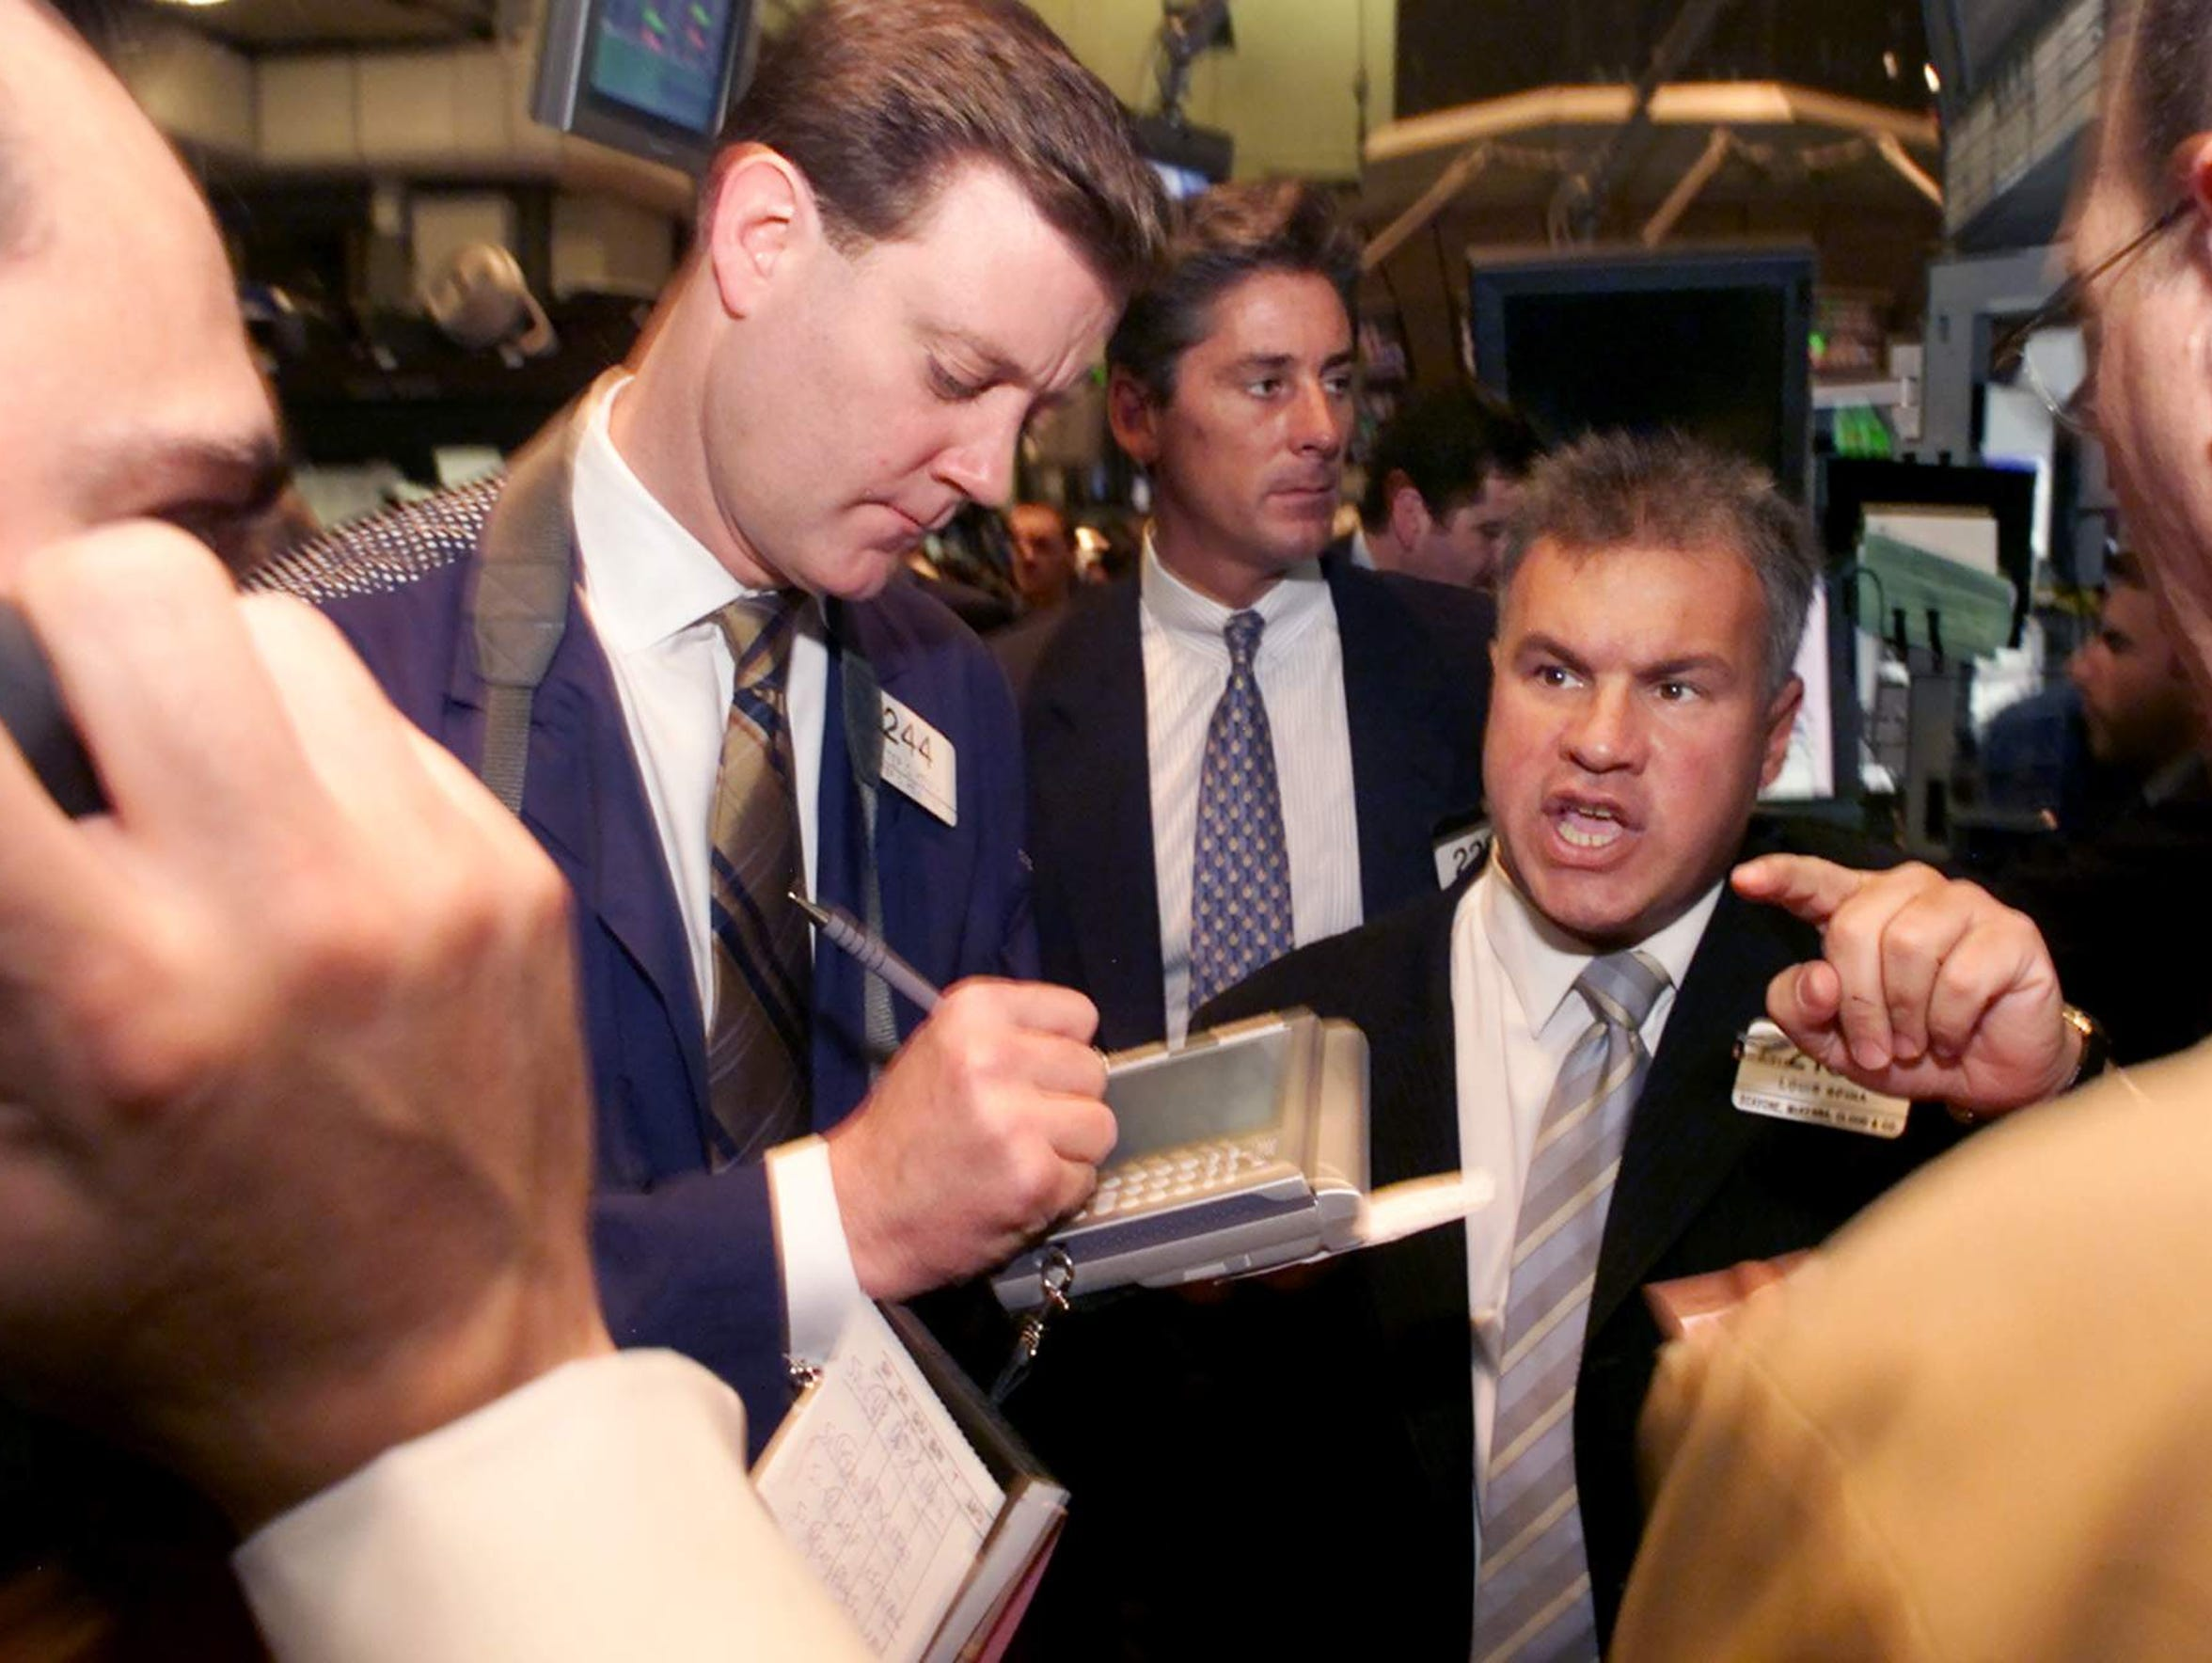 Louis Spina, second from right, conducts trading in